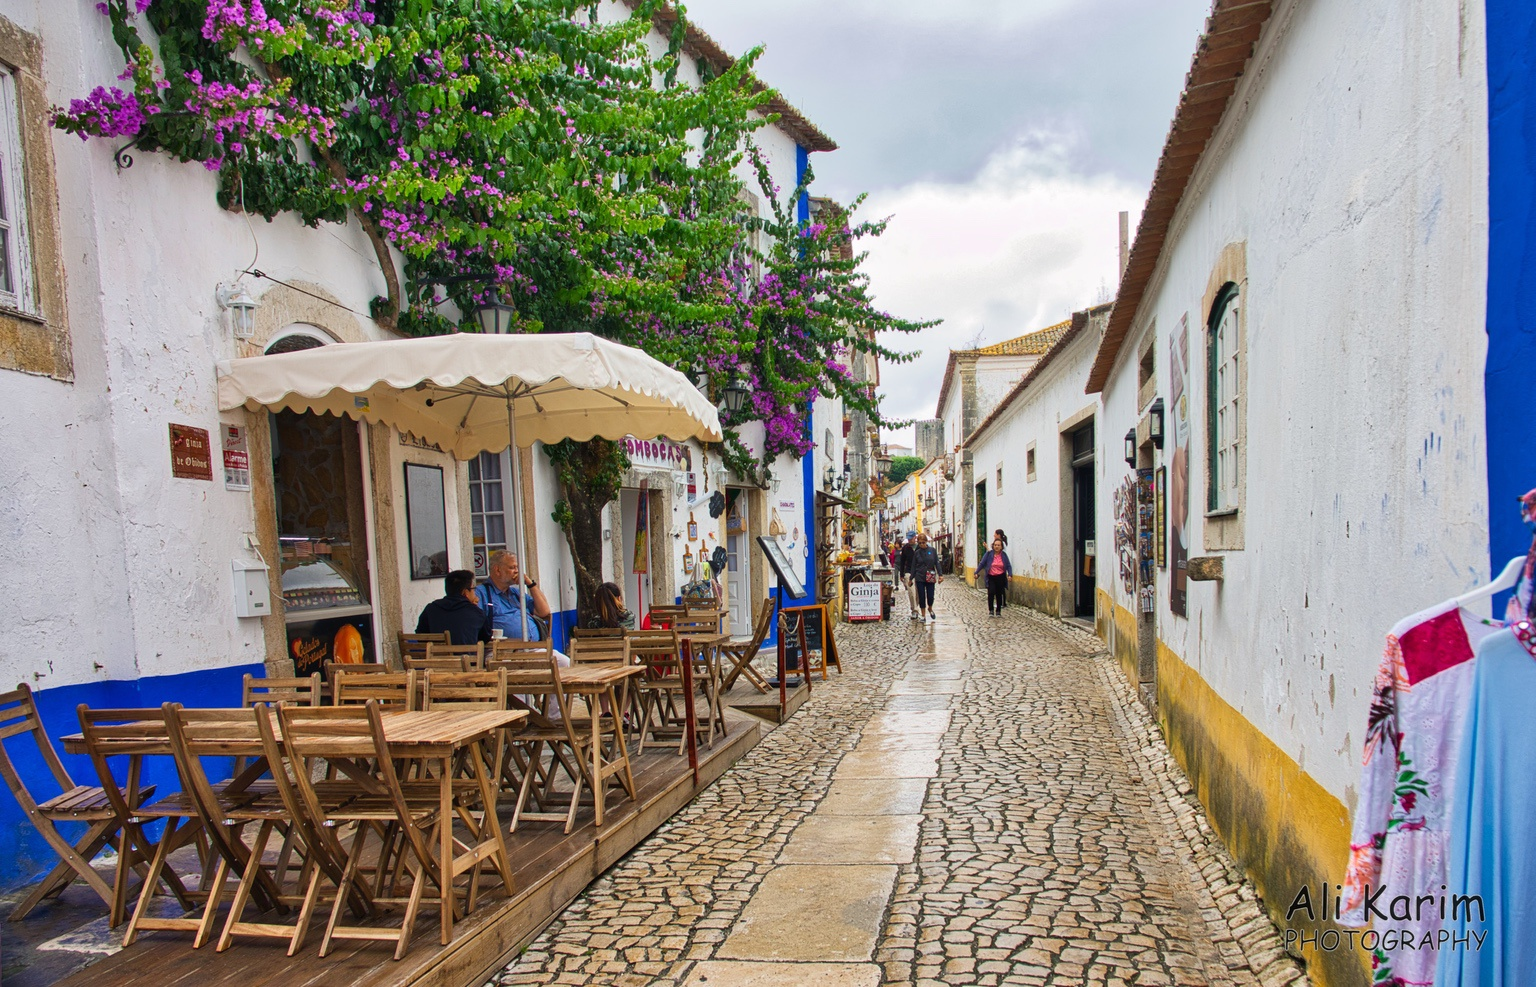 West of Lisbon Picturesque town of Obidos, streets lined with quaint little cafes and shops